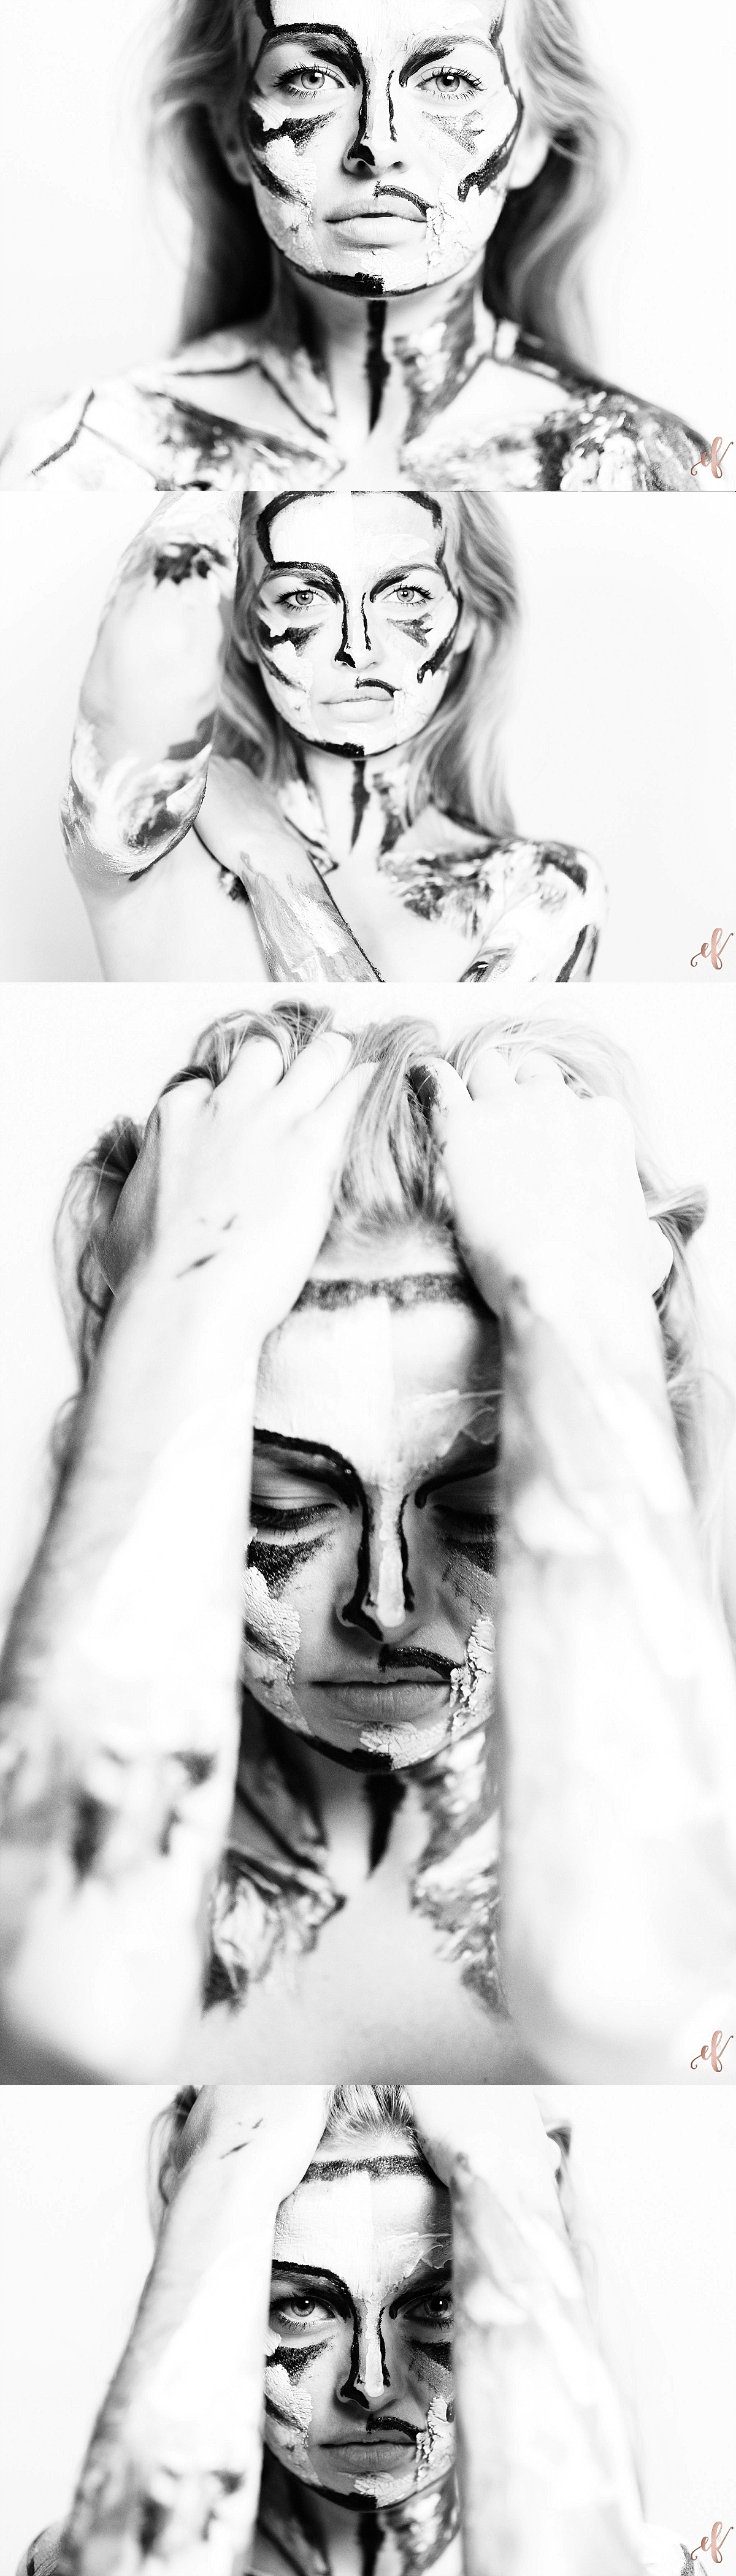 Paint Portraits | Human Canvas | Ernie & Fiona Photography